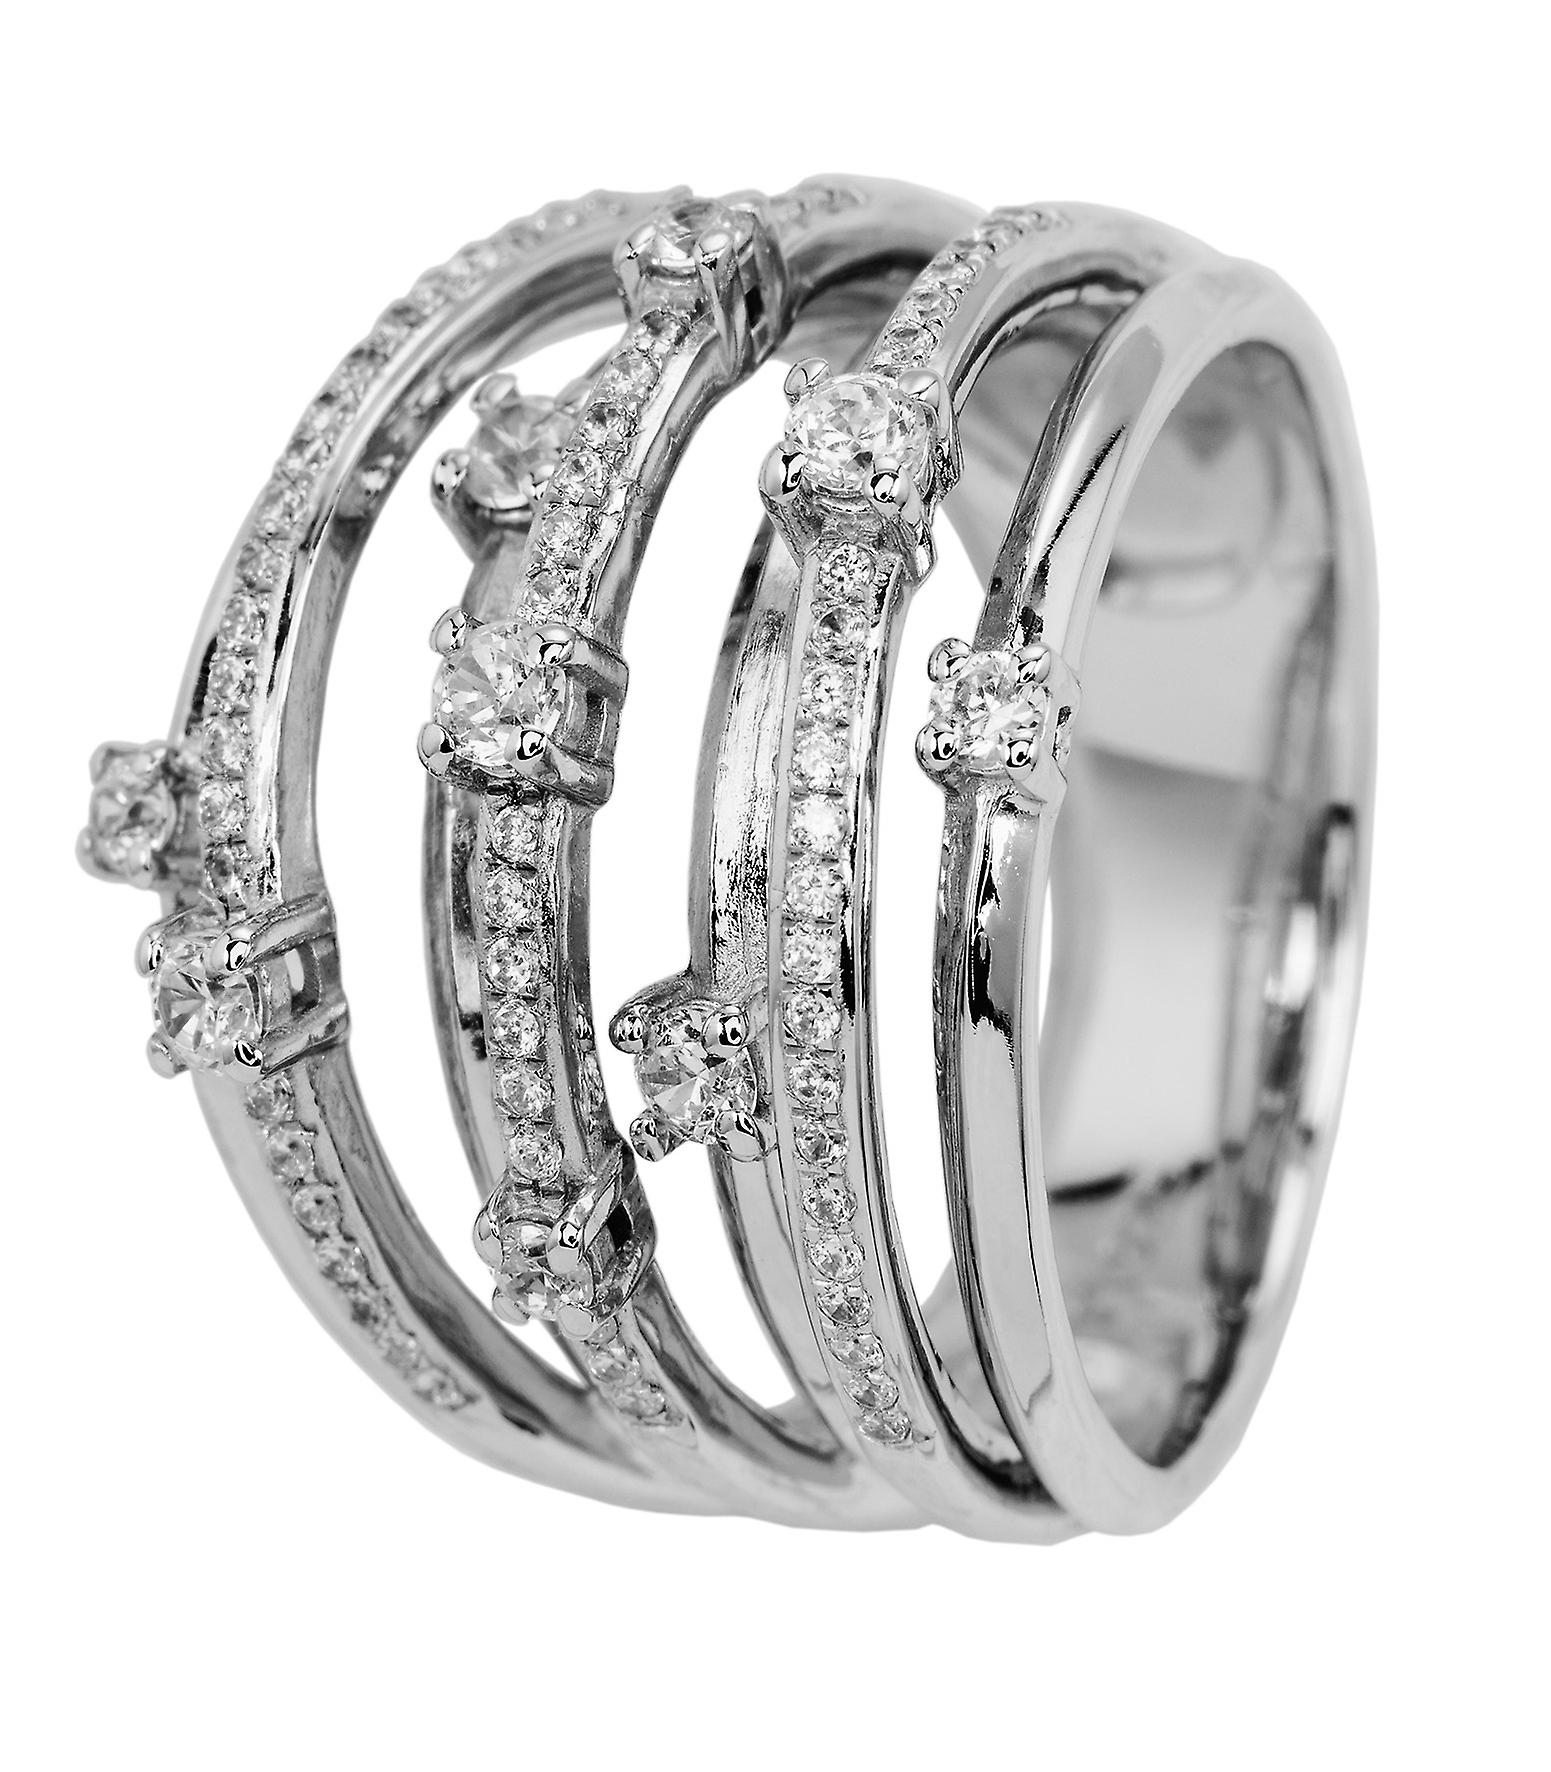 Burgmeister women's ring JBM2012-111, 925 sterling silver rhodanized, white zirconia